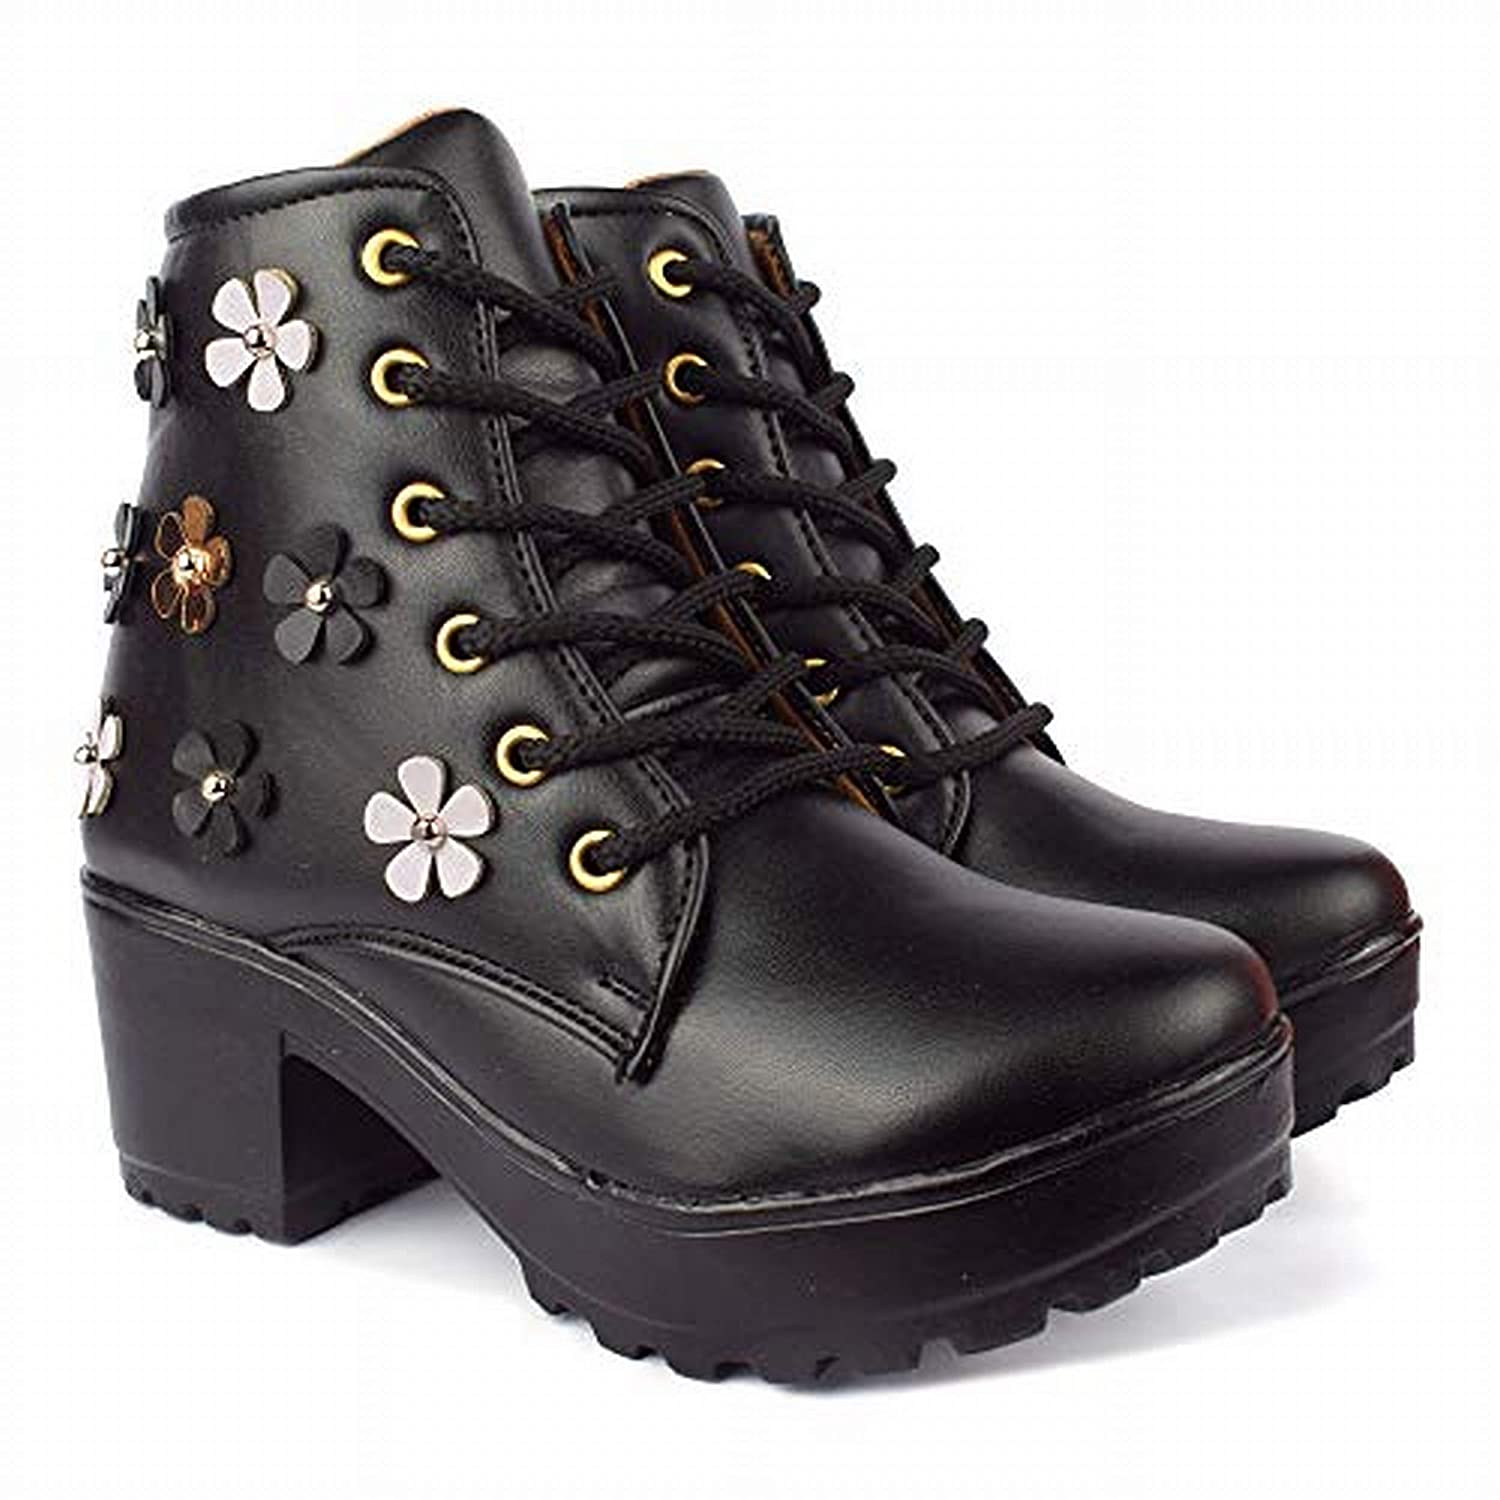 High-Heels Boots for Girls Sneakers